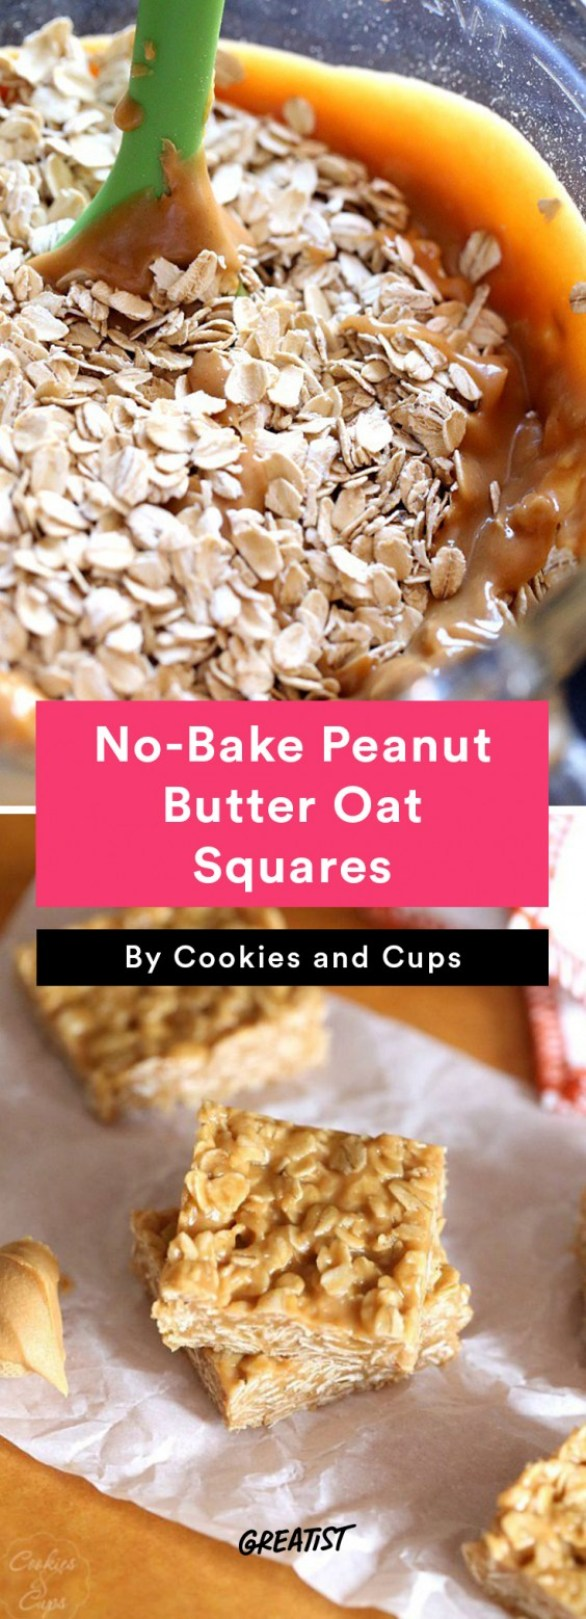 No-Bake Peanut Butter Oat Squares Recipe